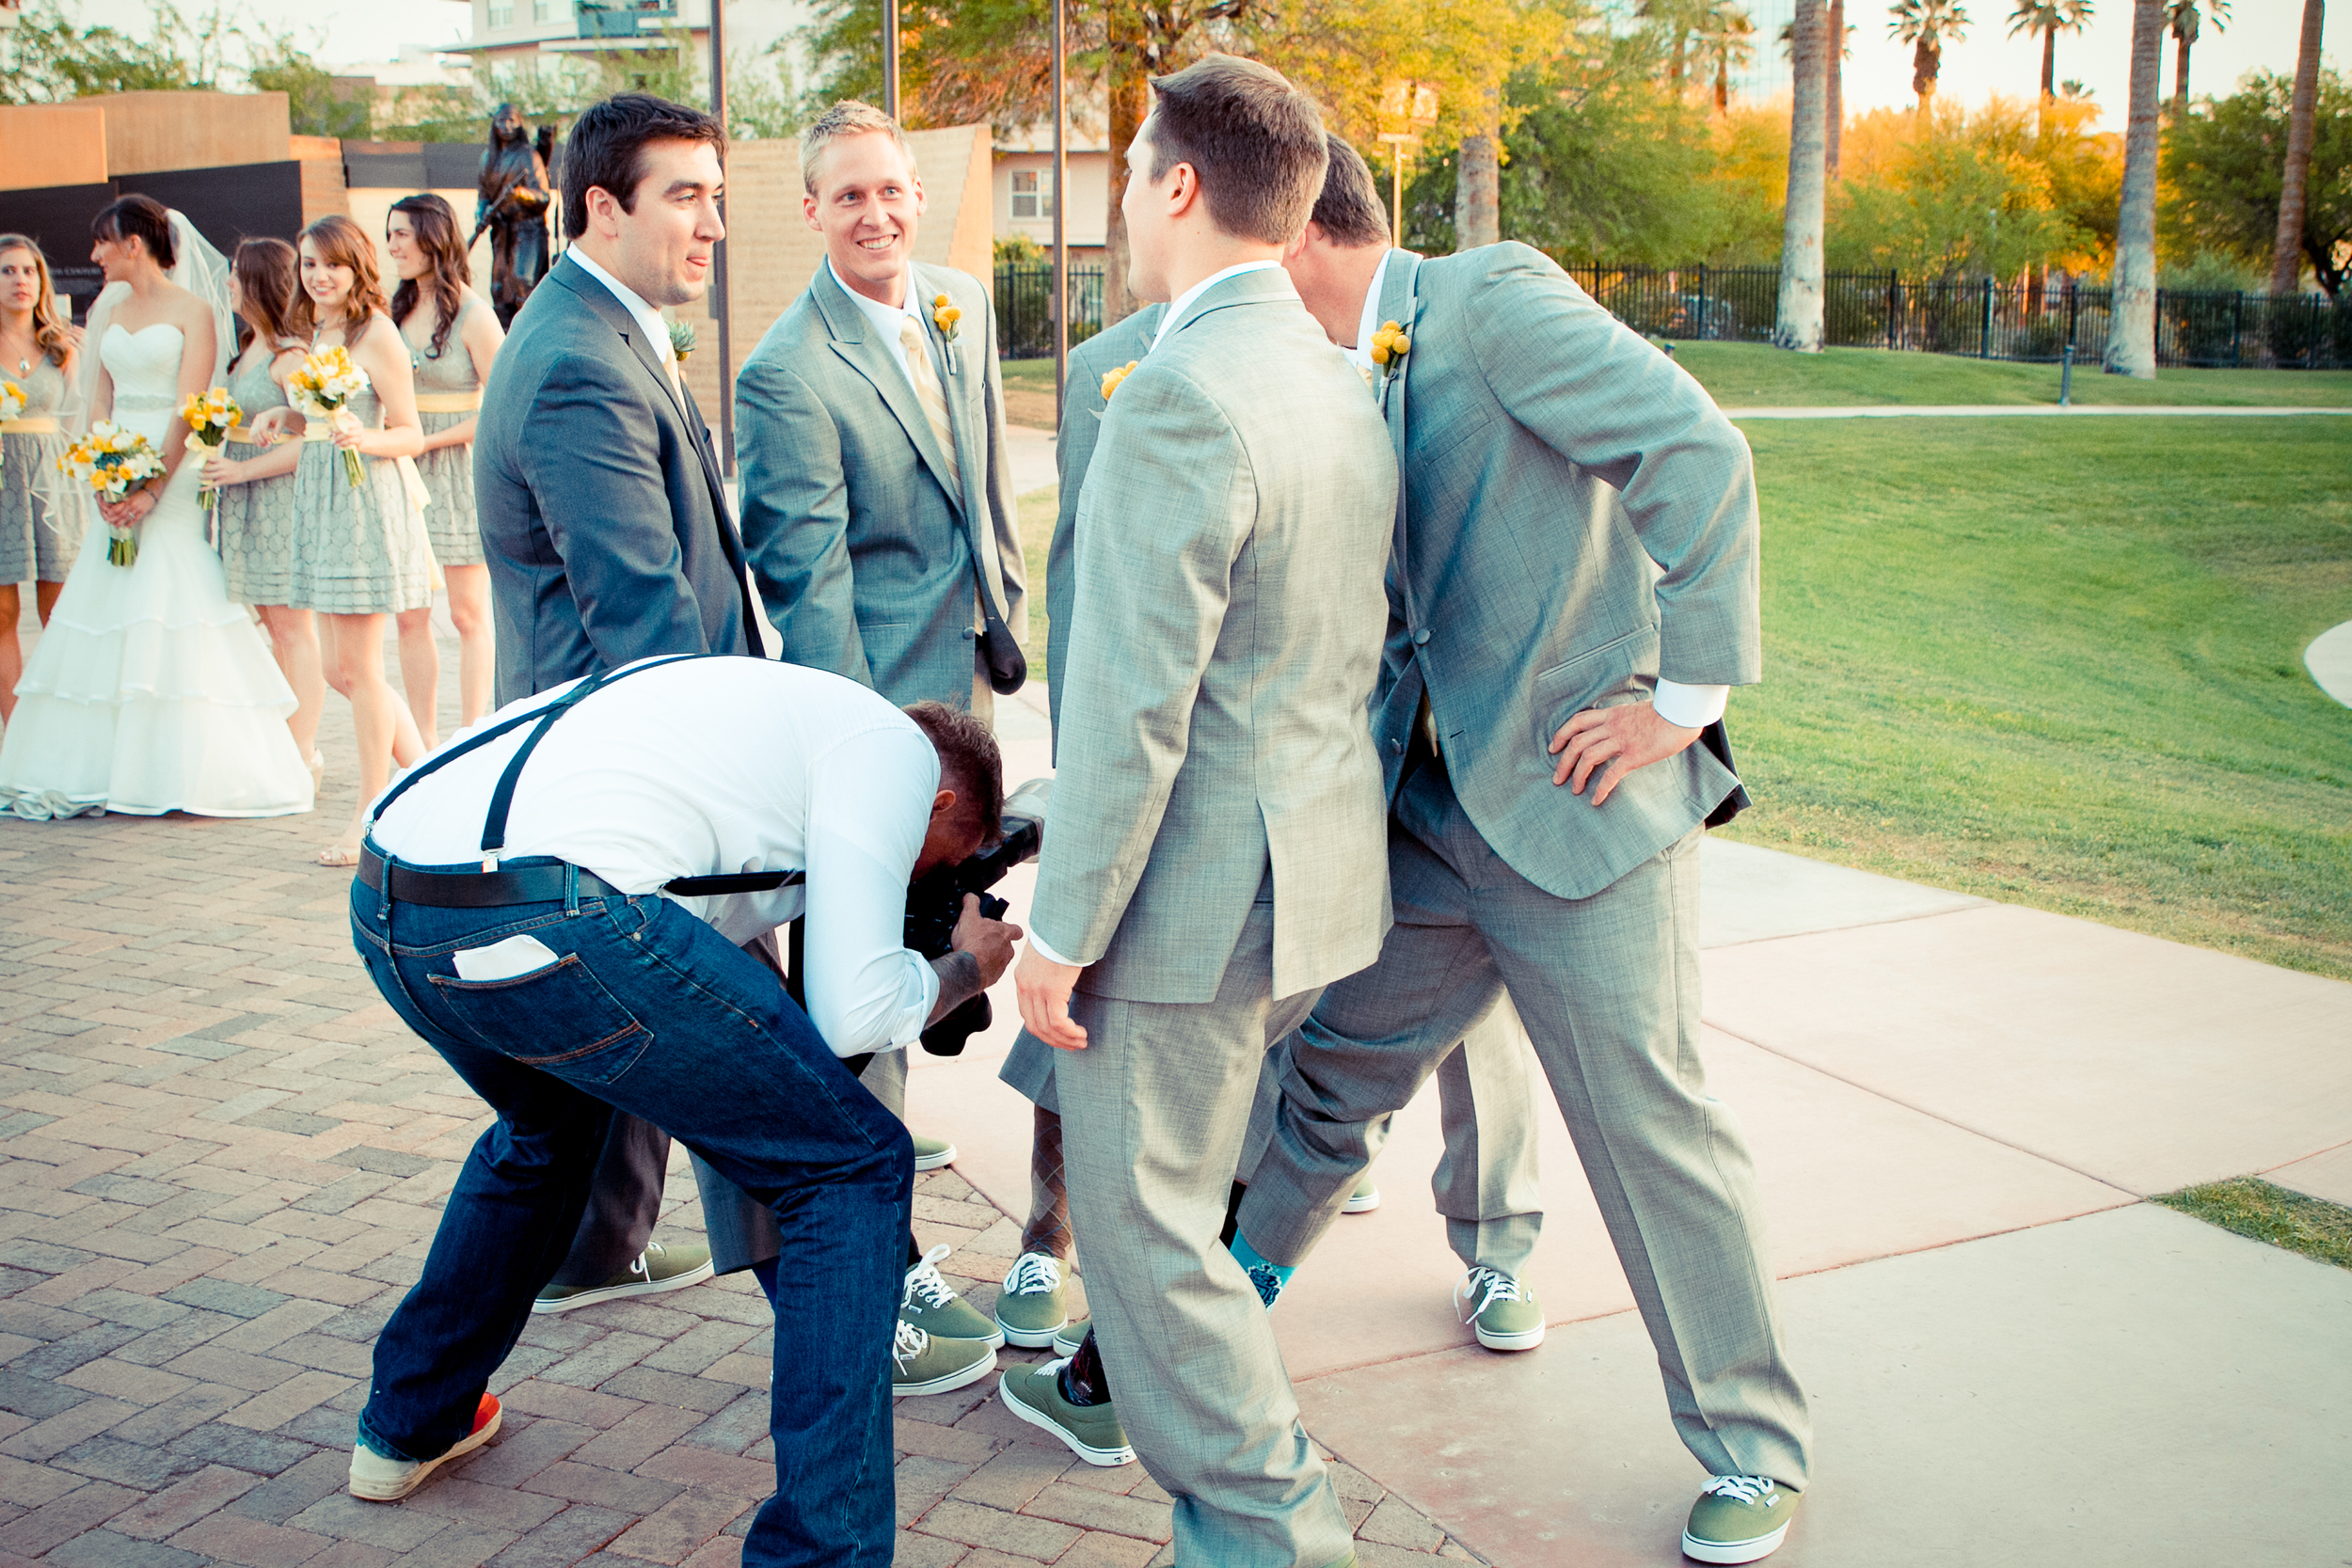 Me getting the token shoe shot haha! Thanks to www.melissawrightphotography.com for the picture!